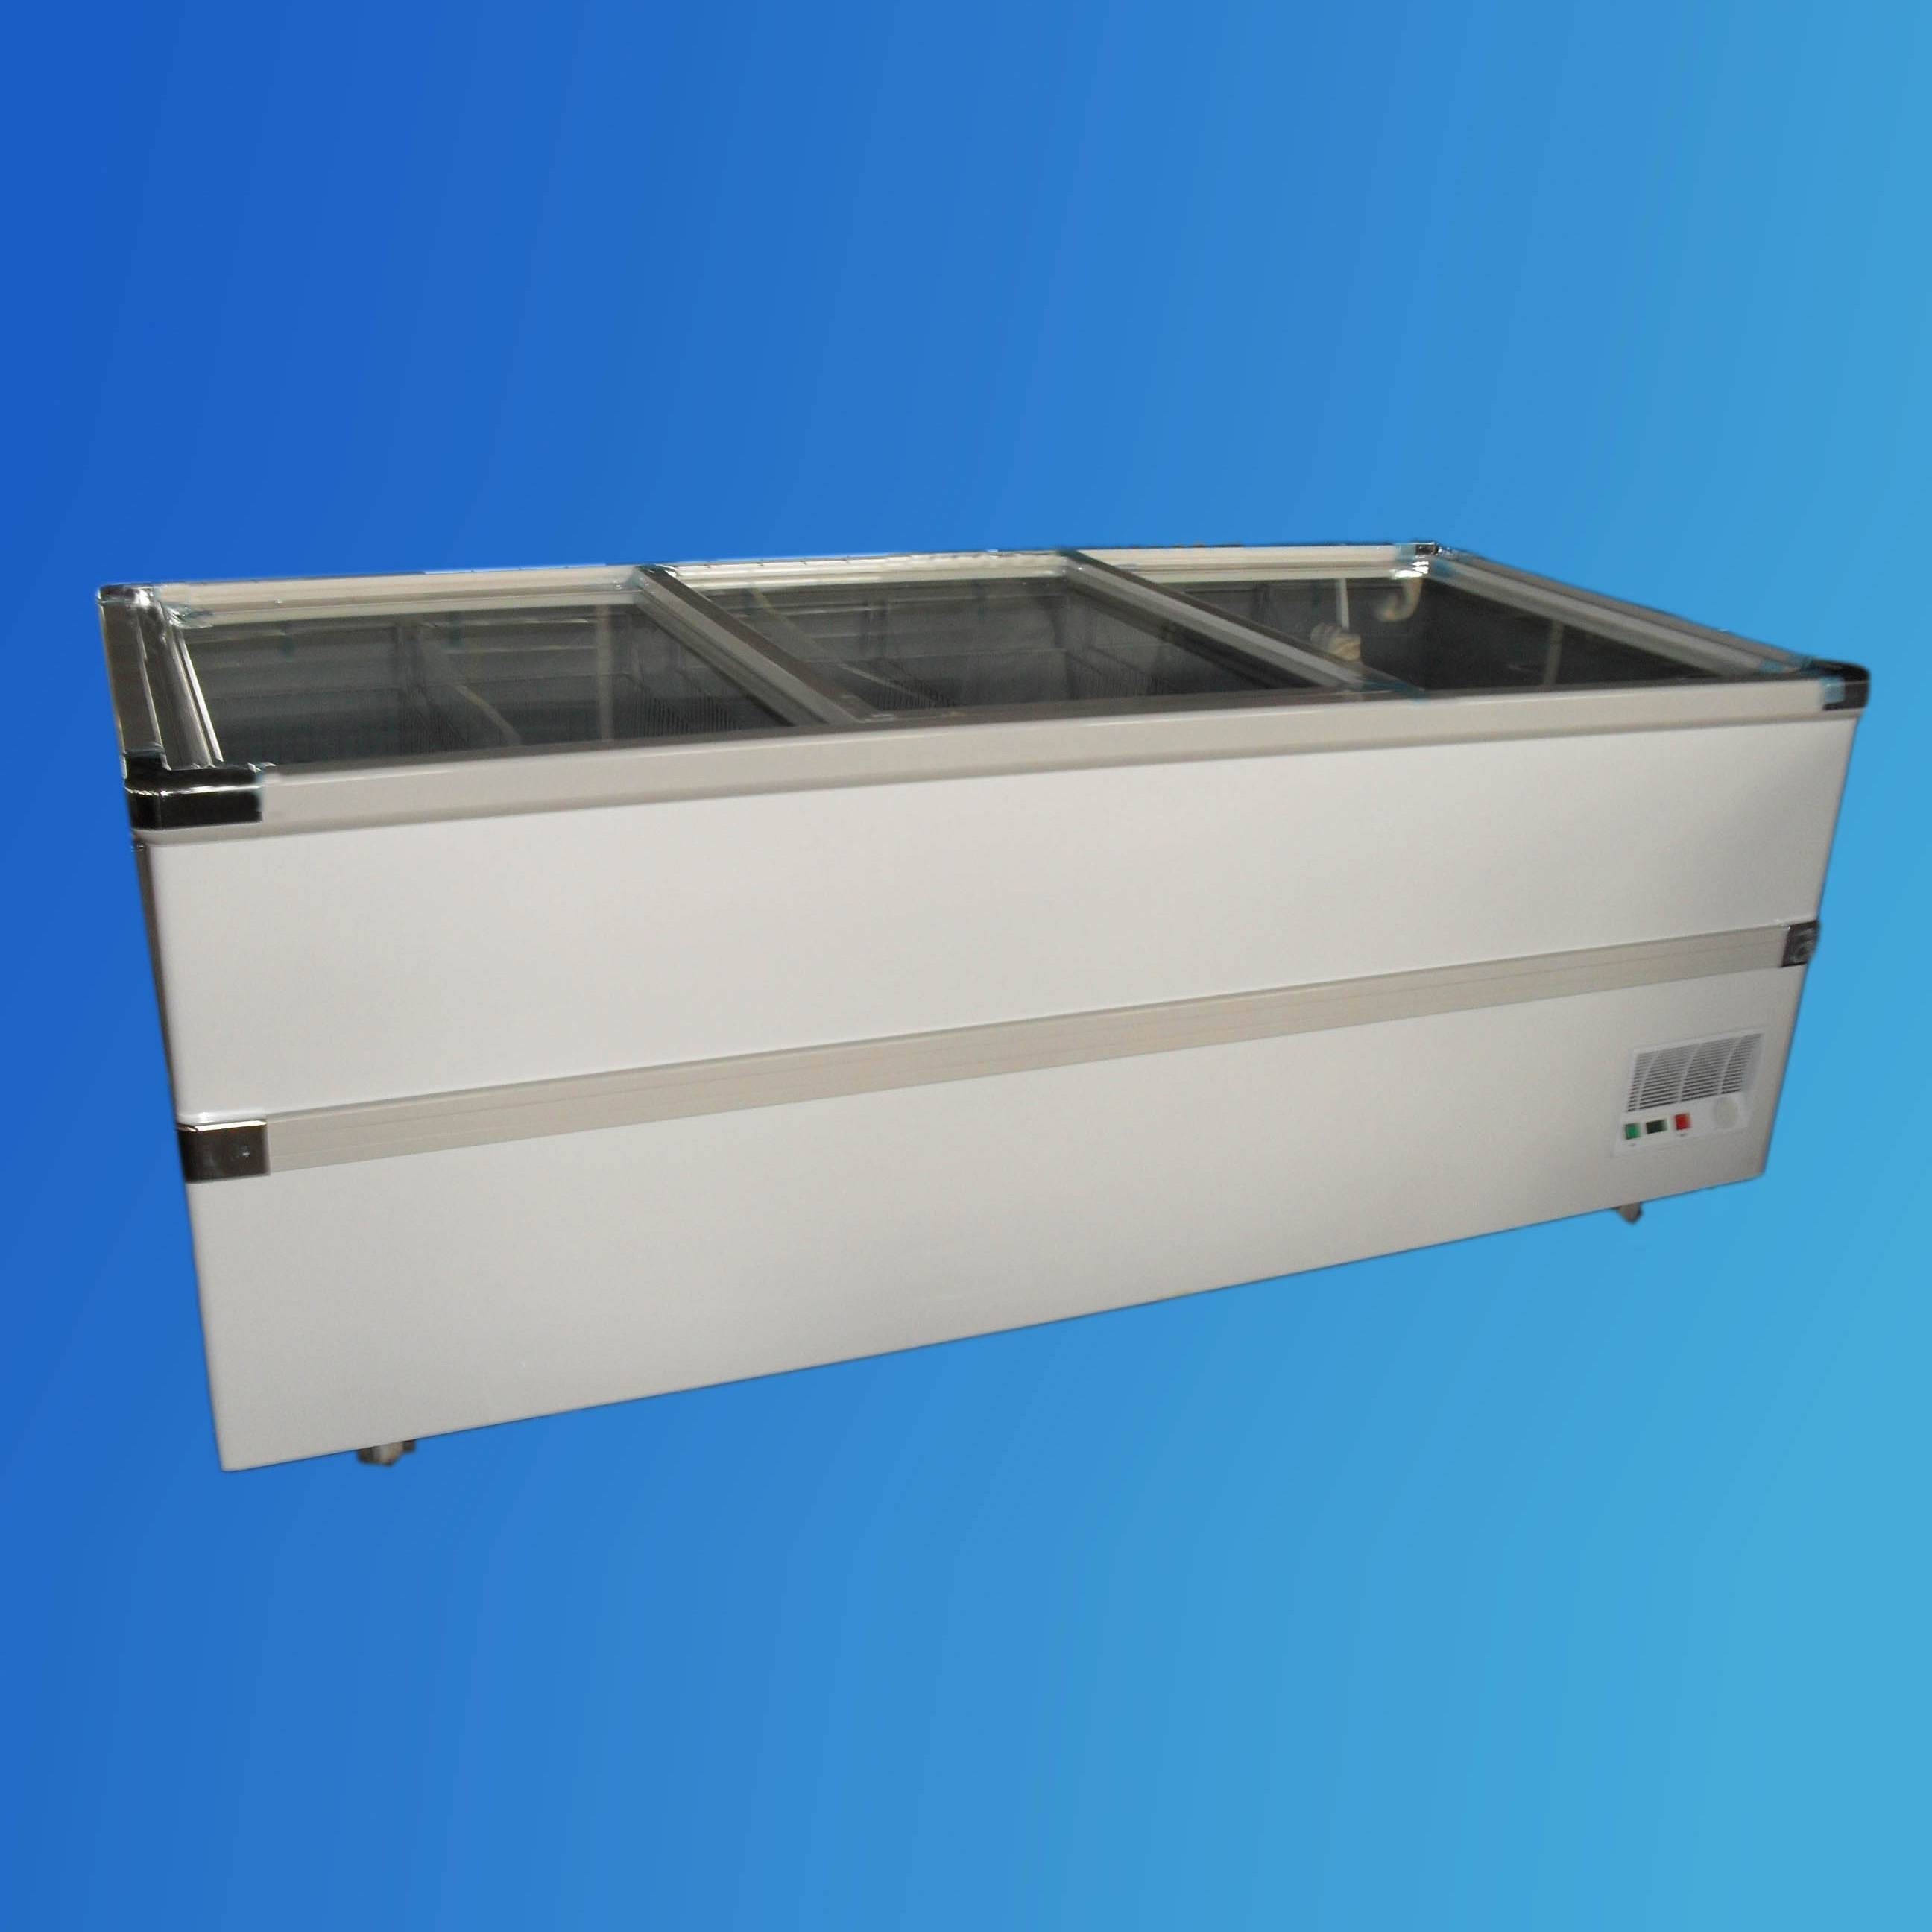 2.0m Jumbo Freezer, Glass Door Display Freezer SD/Sc-780